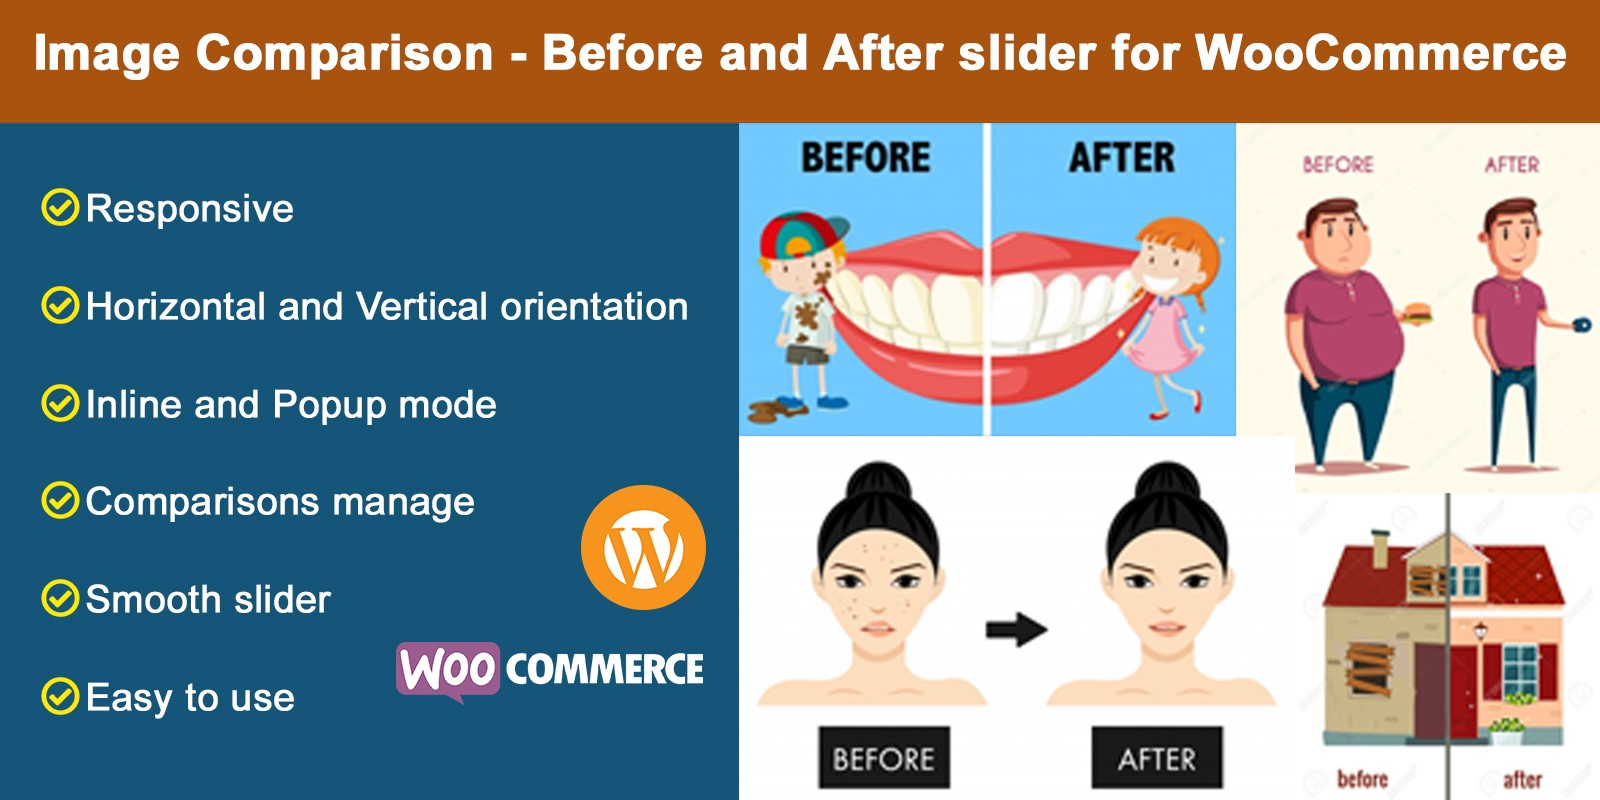 WooComme Image Comparison Before And After slider